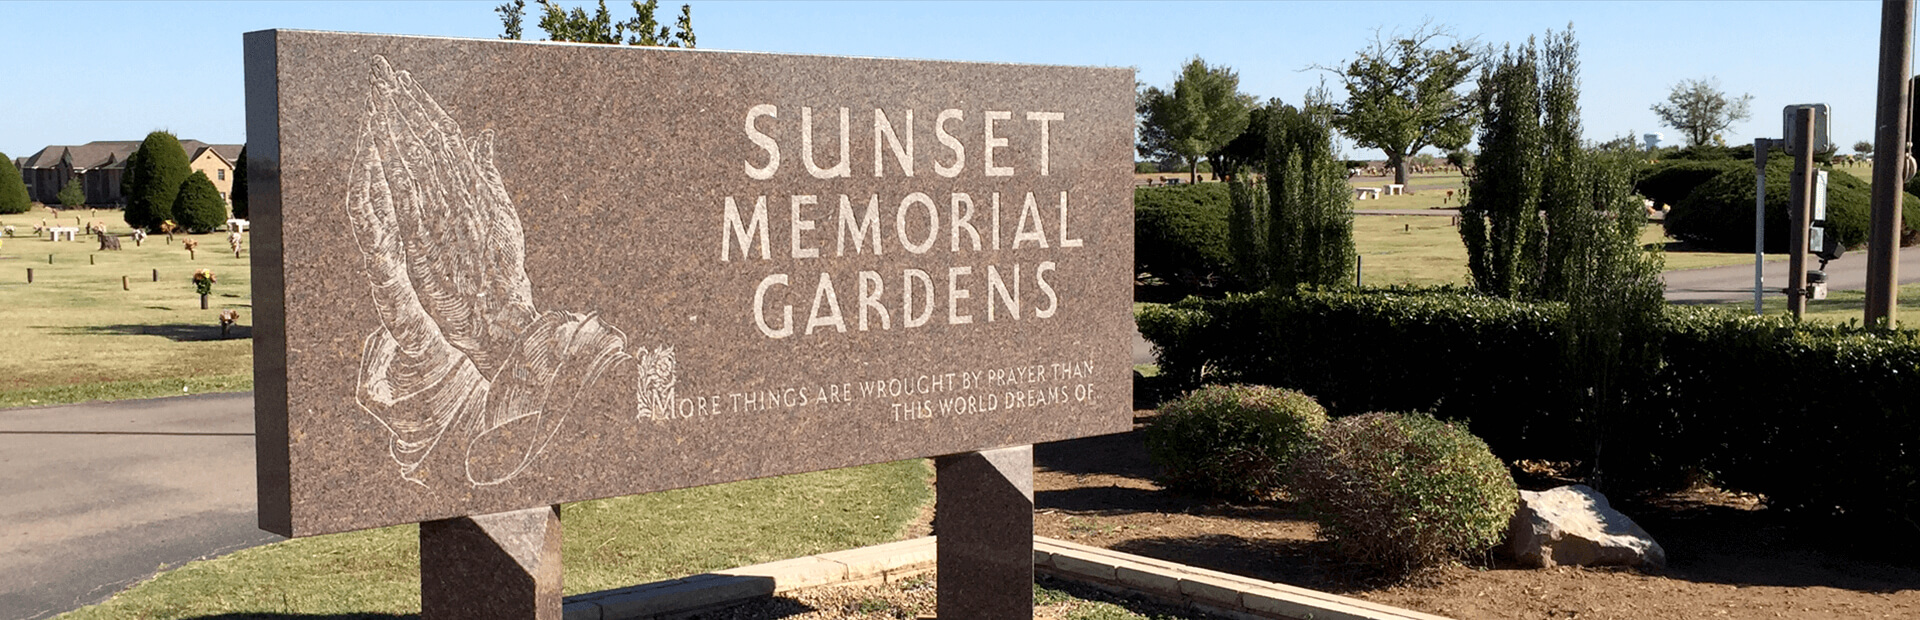 Sunset Memorial Gardens in Lawton, OK